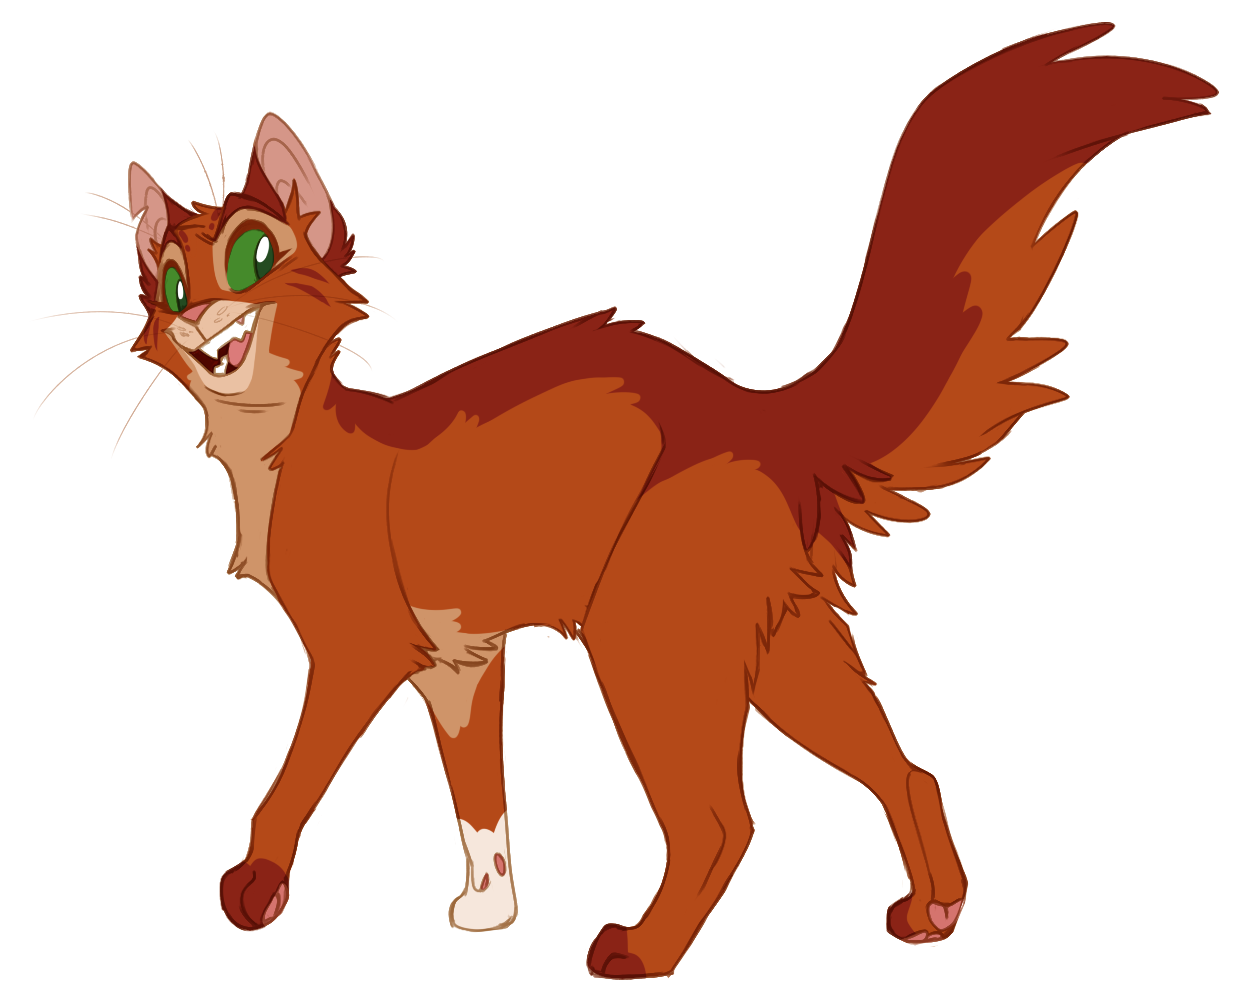 100 Warrior Cats Challenge Day 20 Squirrelflight